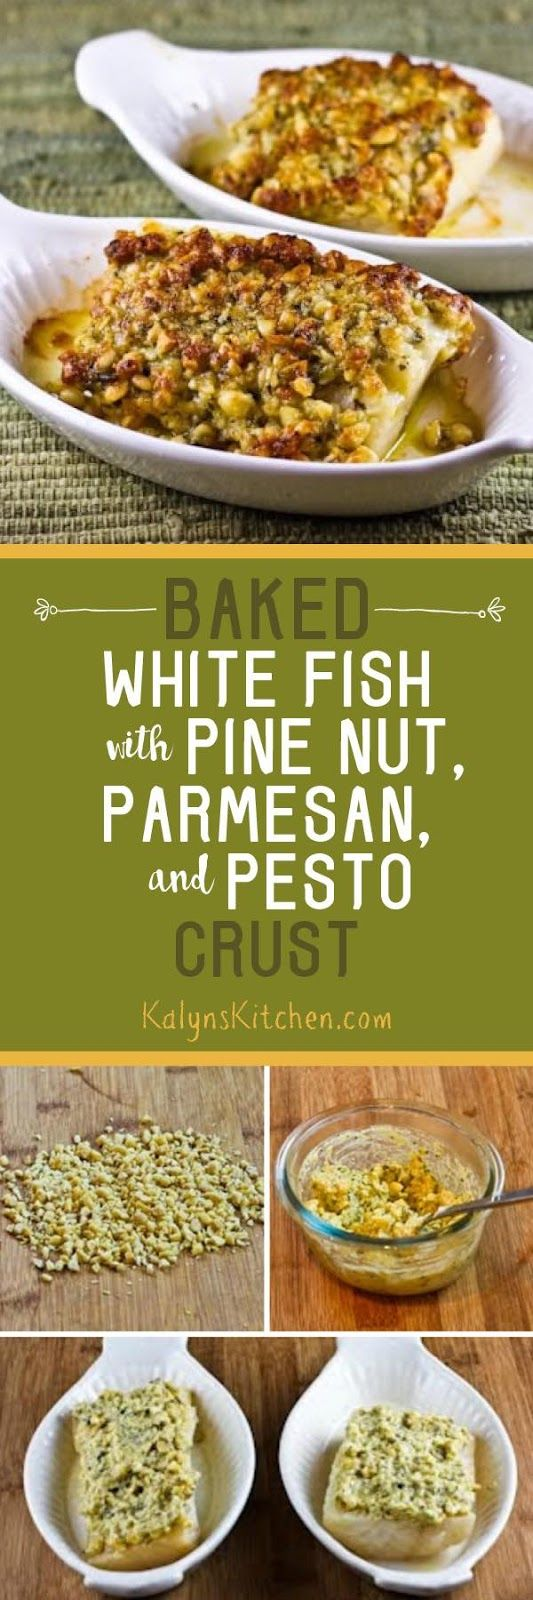 Baked White Fish with Pine Nut, Parmesan, and Basil Pesto Crust is low ...